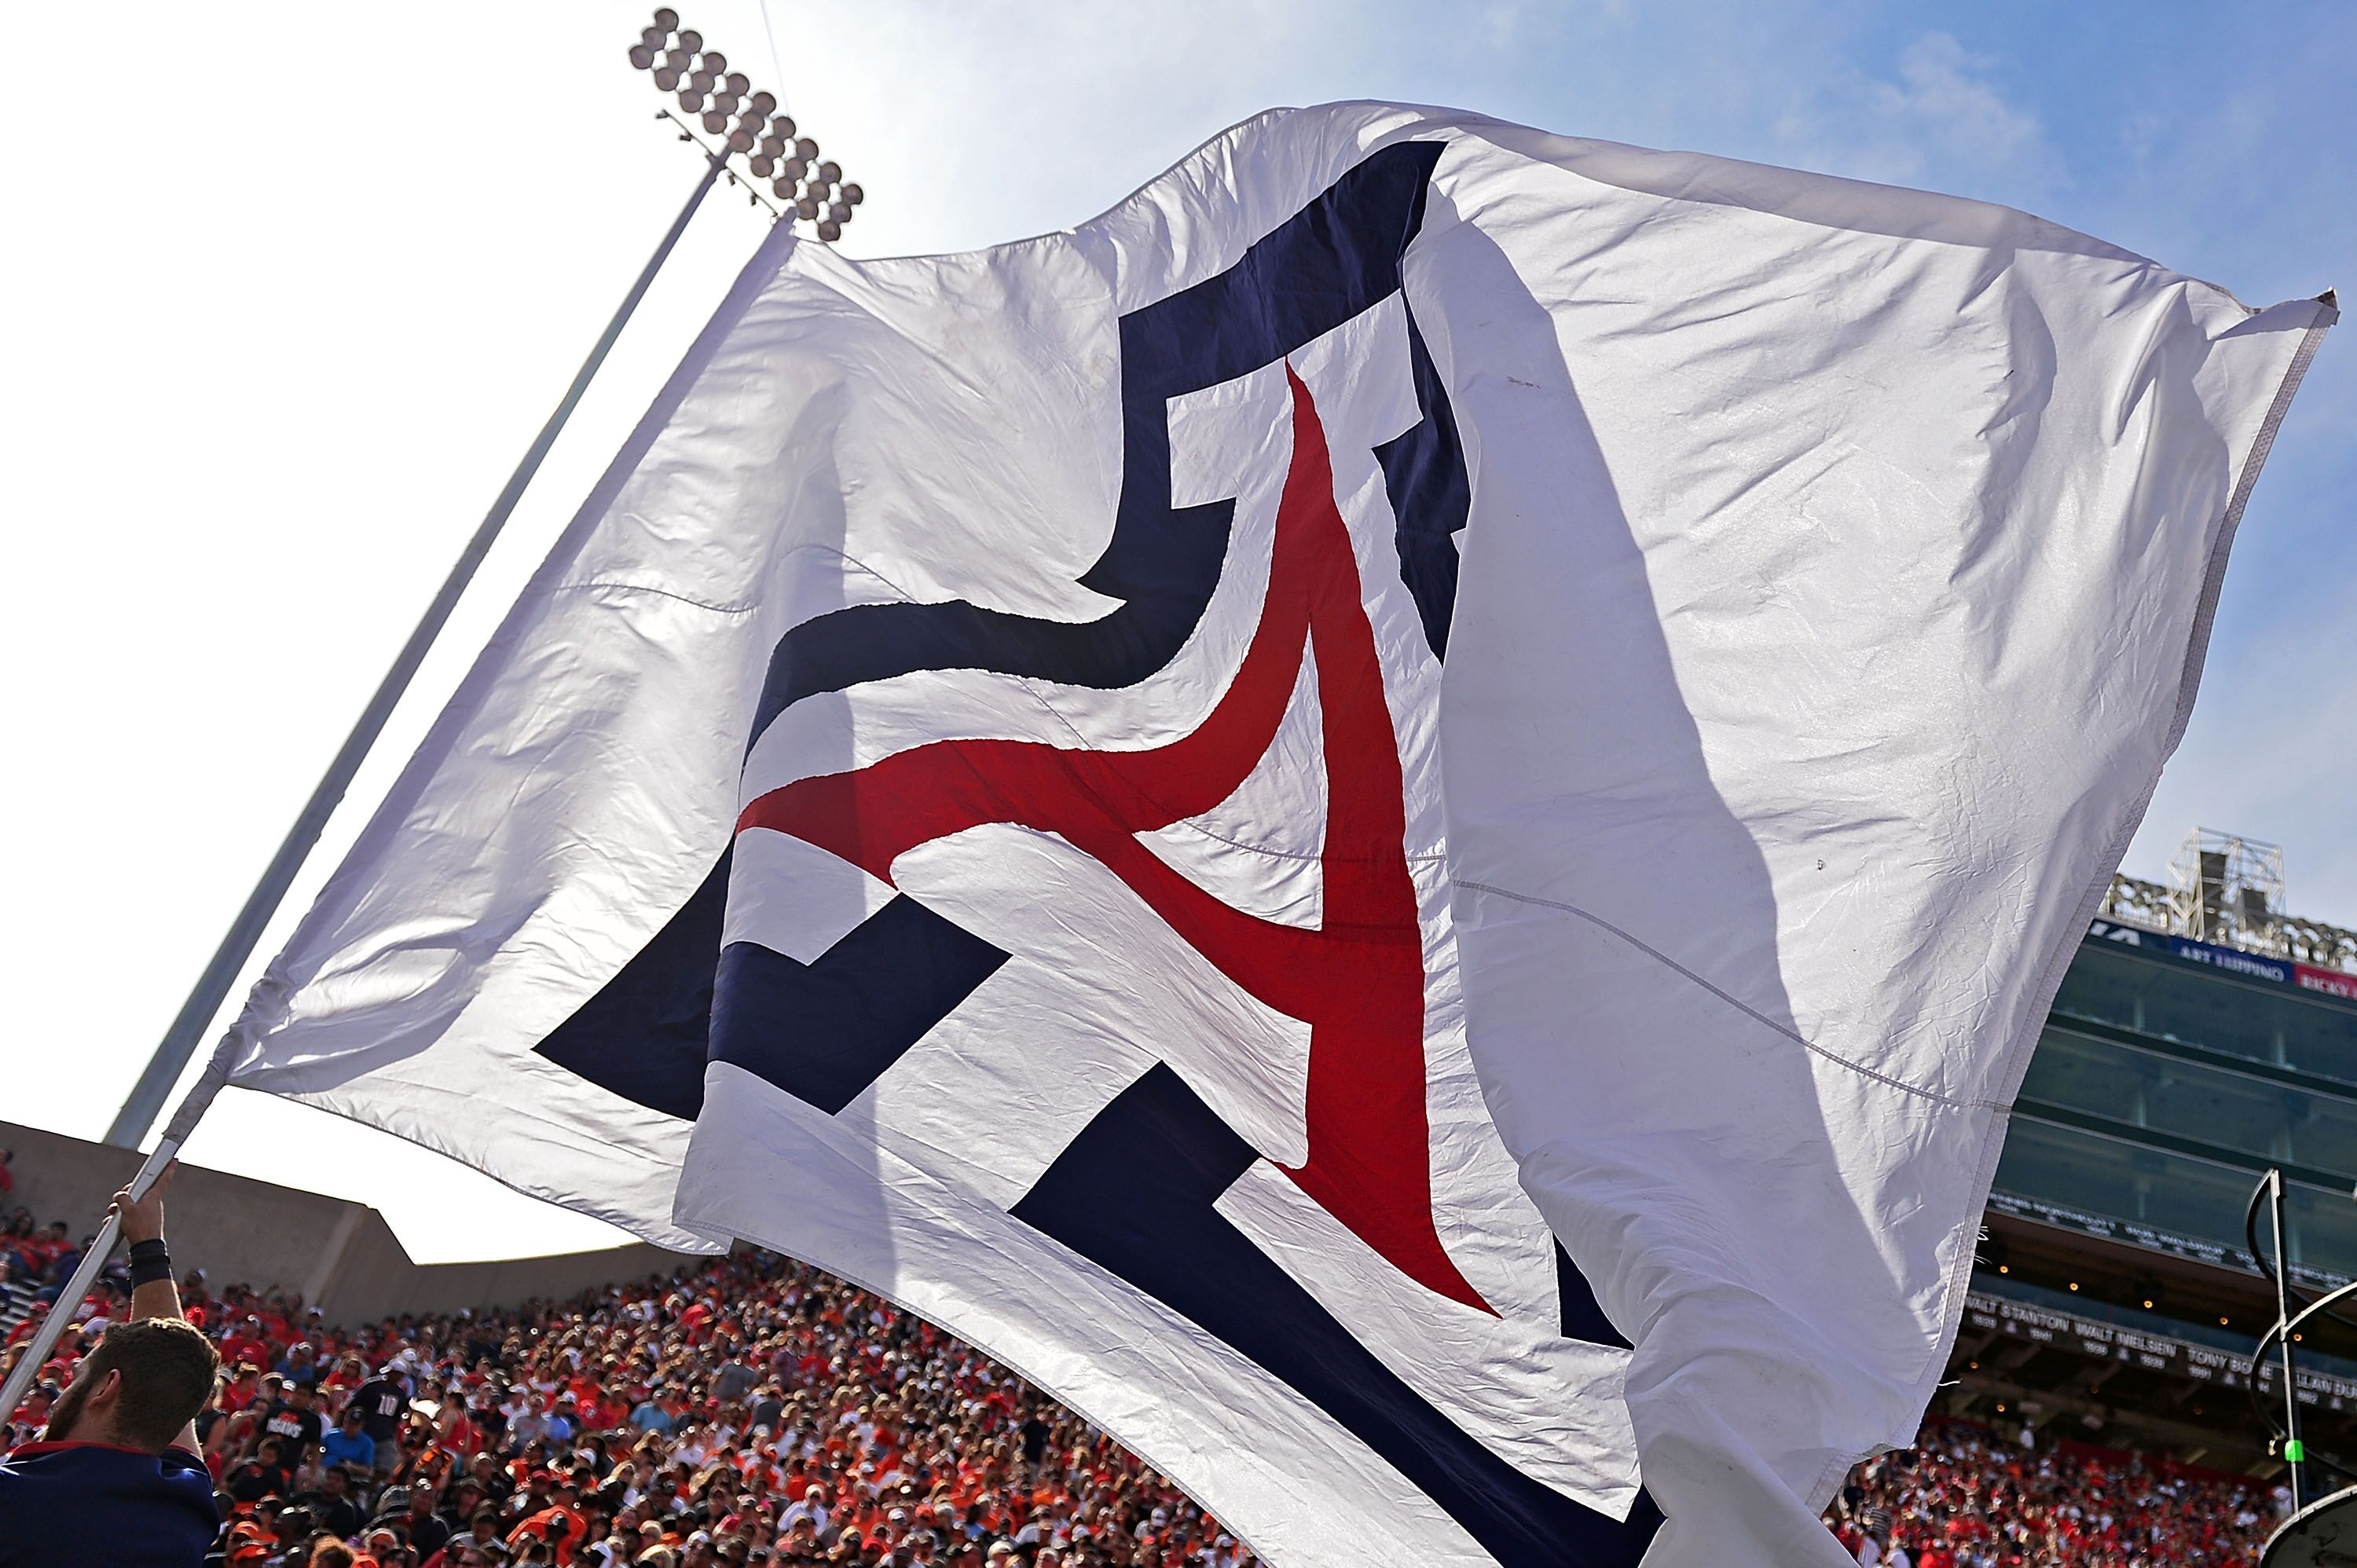 492178526-oregon-state-v-arizona.jpg